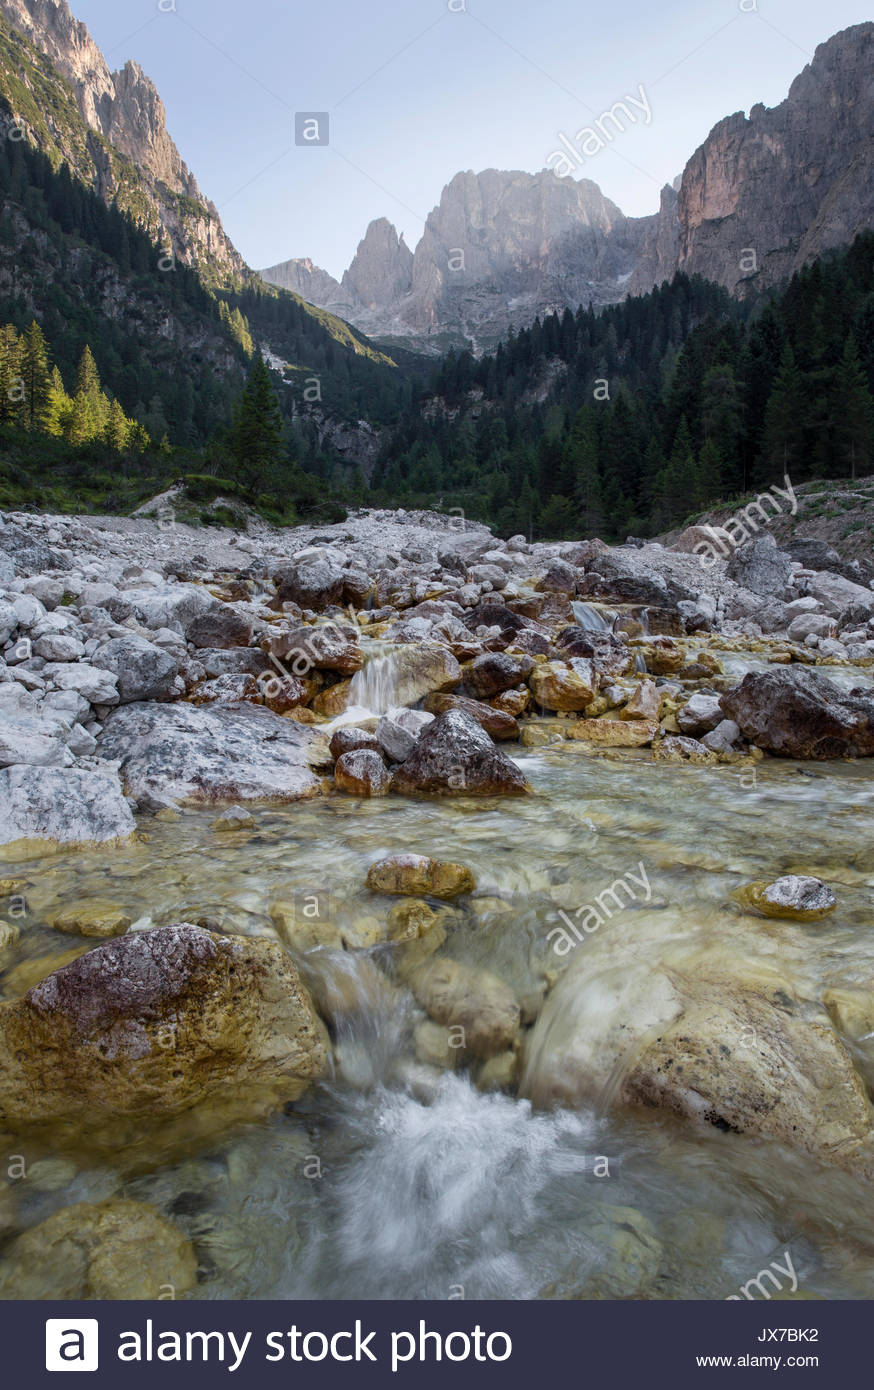 A river streams over rocks in Val Canali. - Stock Image